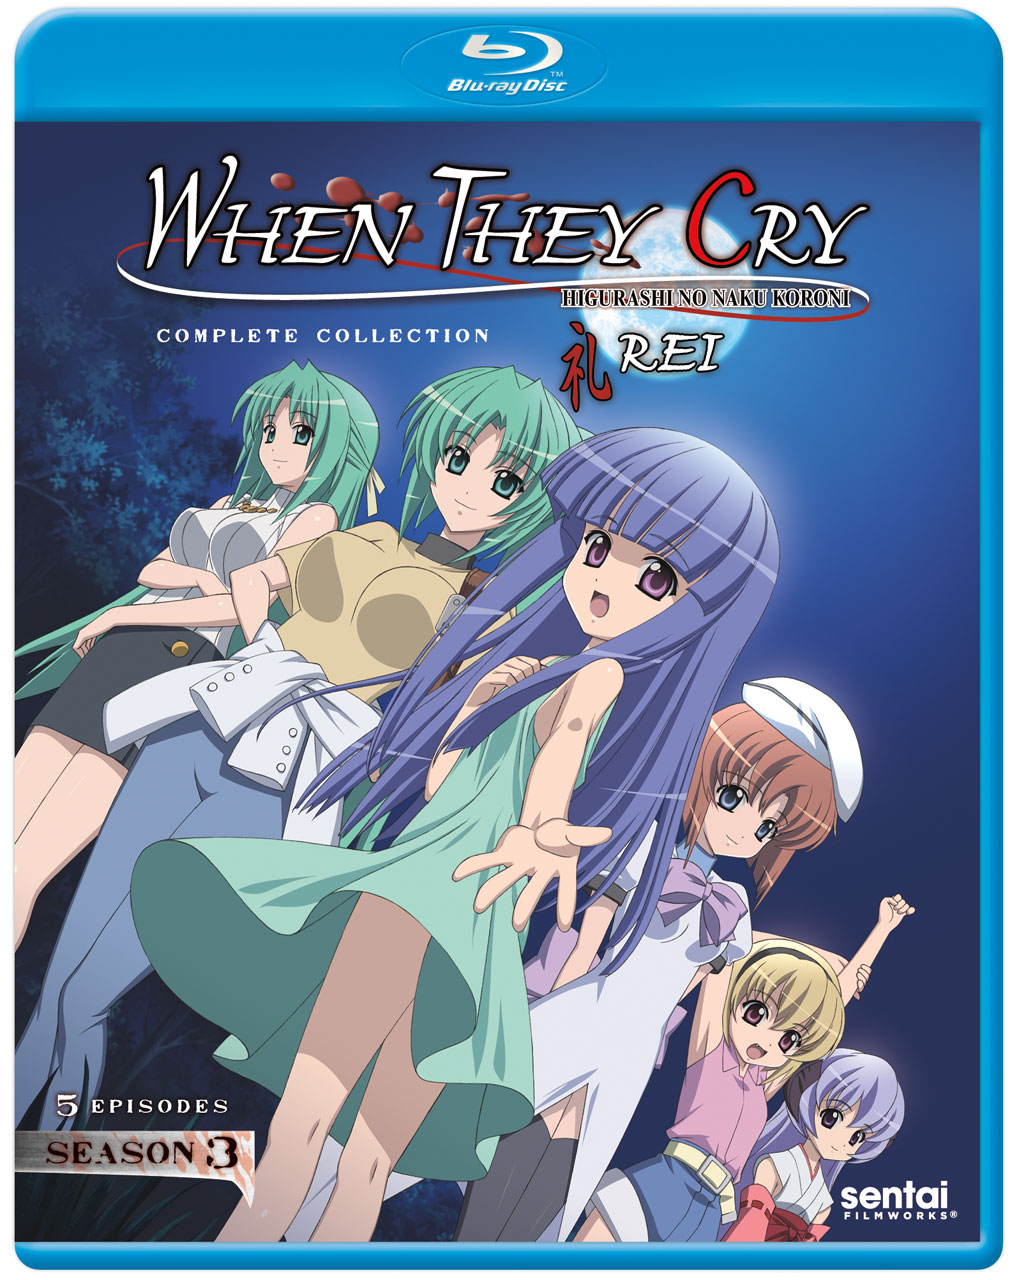 When They Cry Rei (Season 3) Blu-ray 814131012791